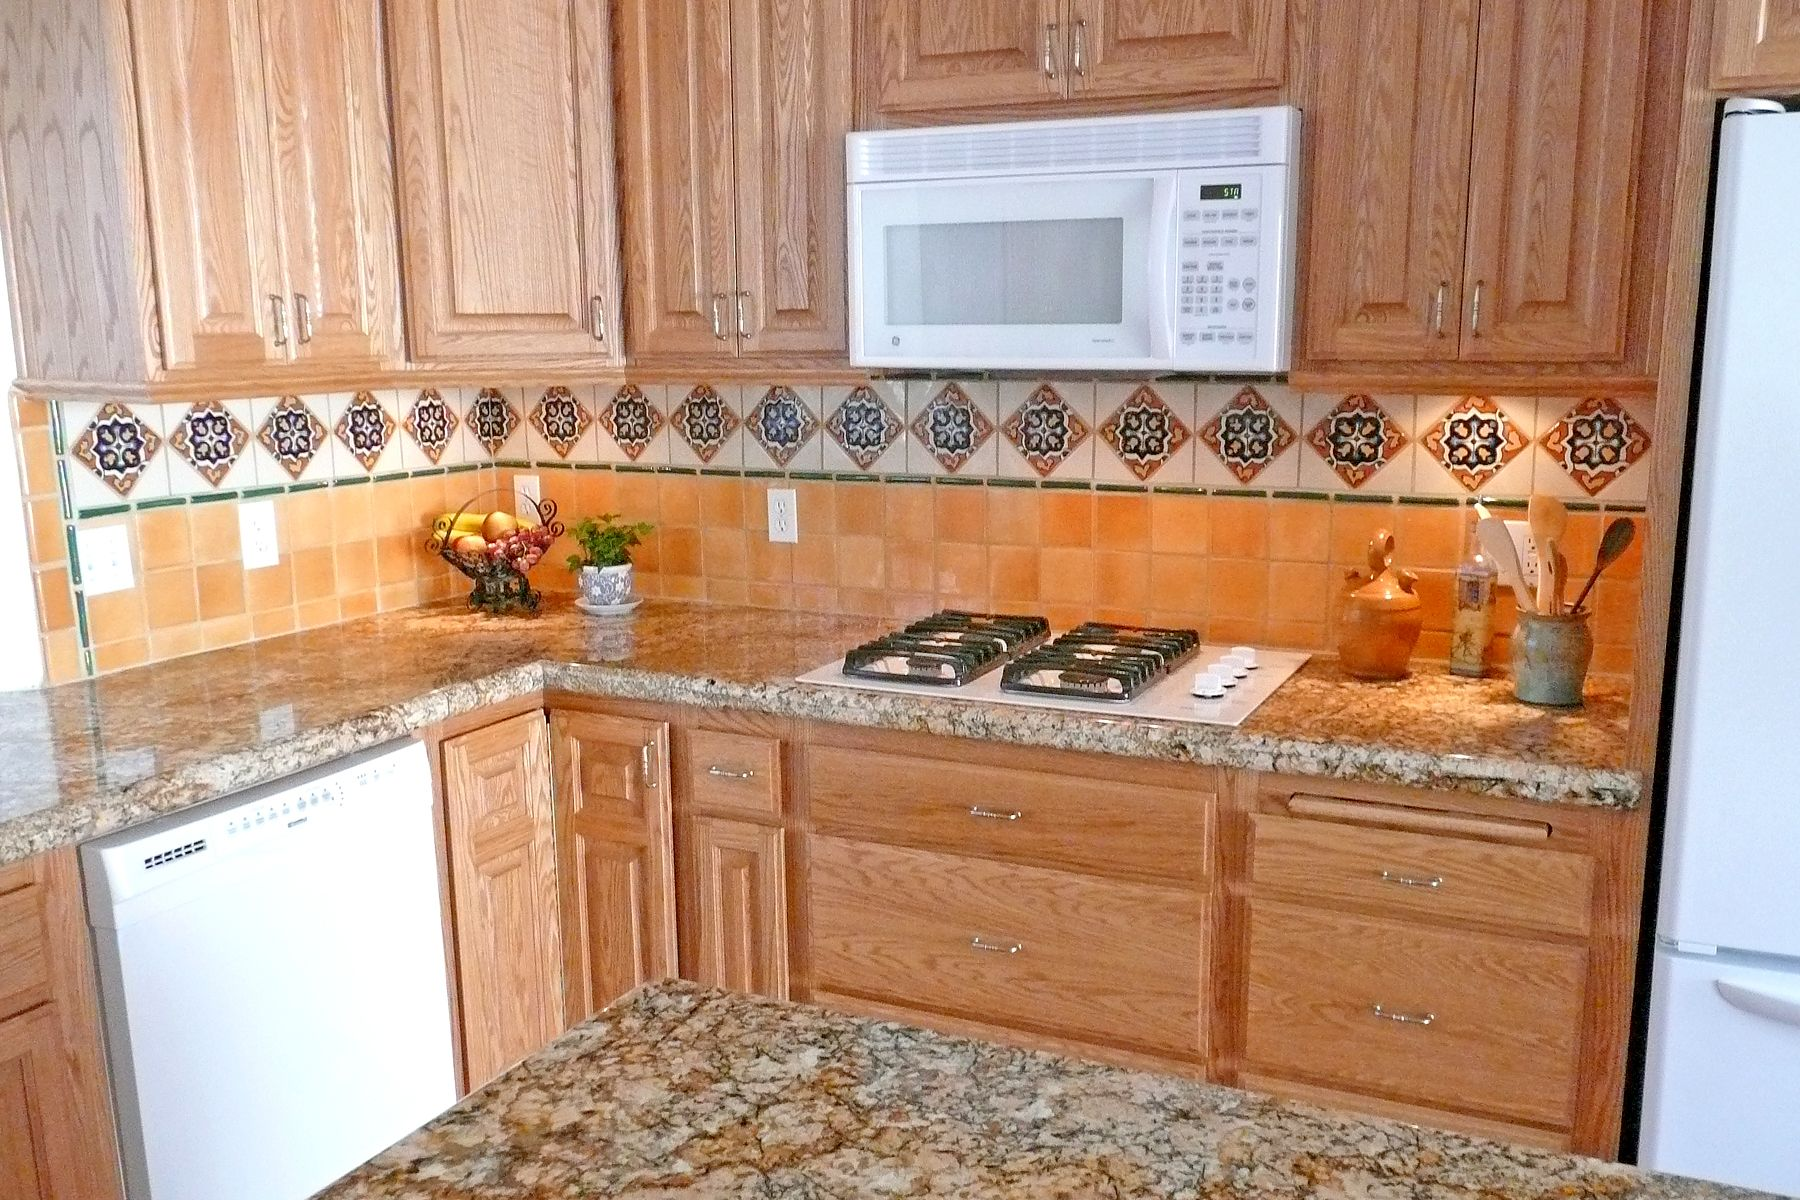 Spanish Tile Countertops Kitchen With Mexican Tiles Backsplash For The Home